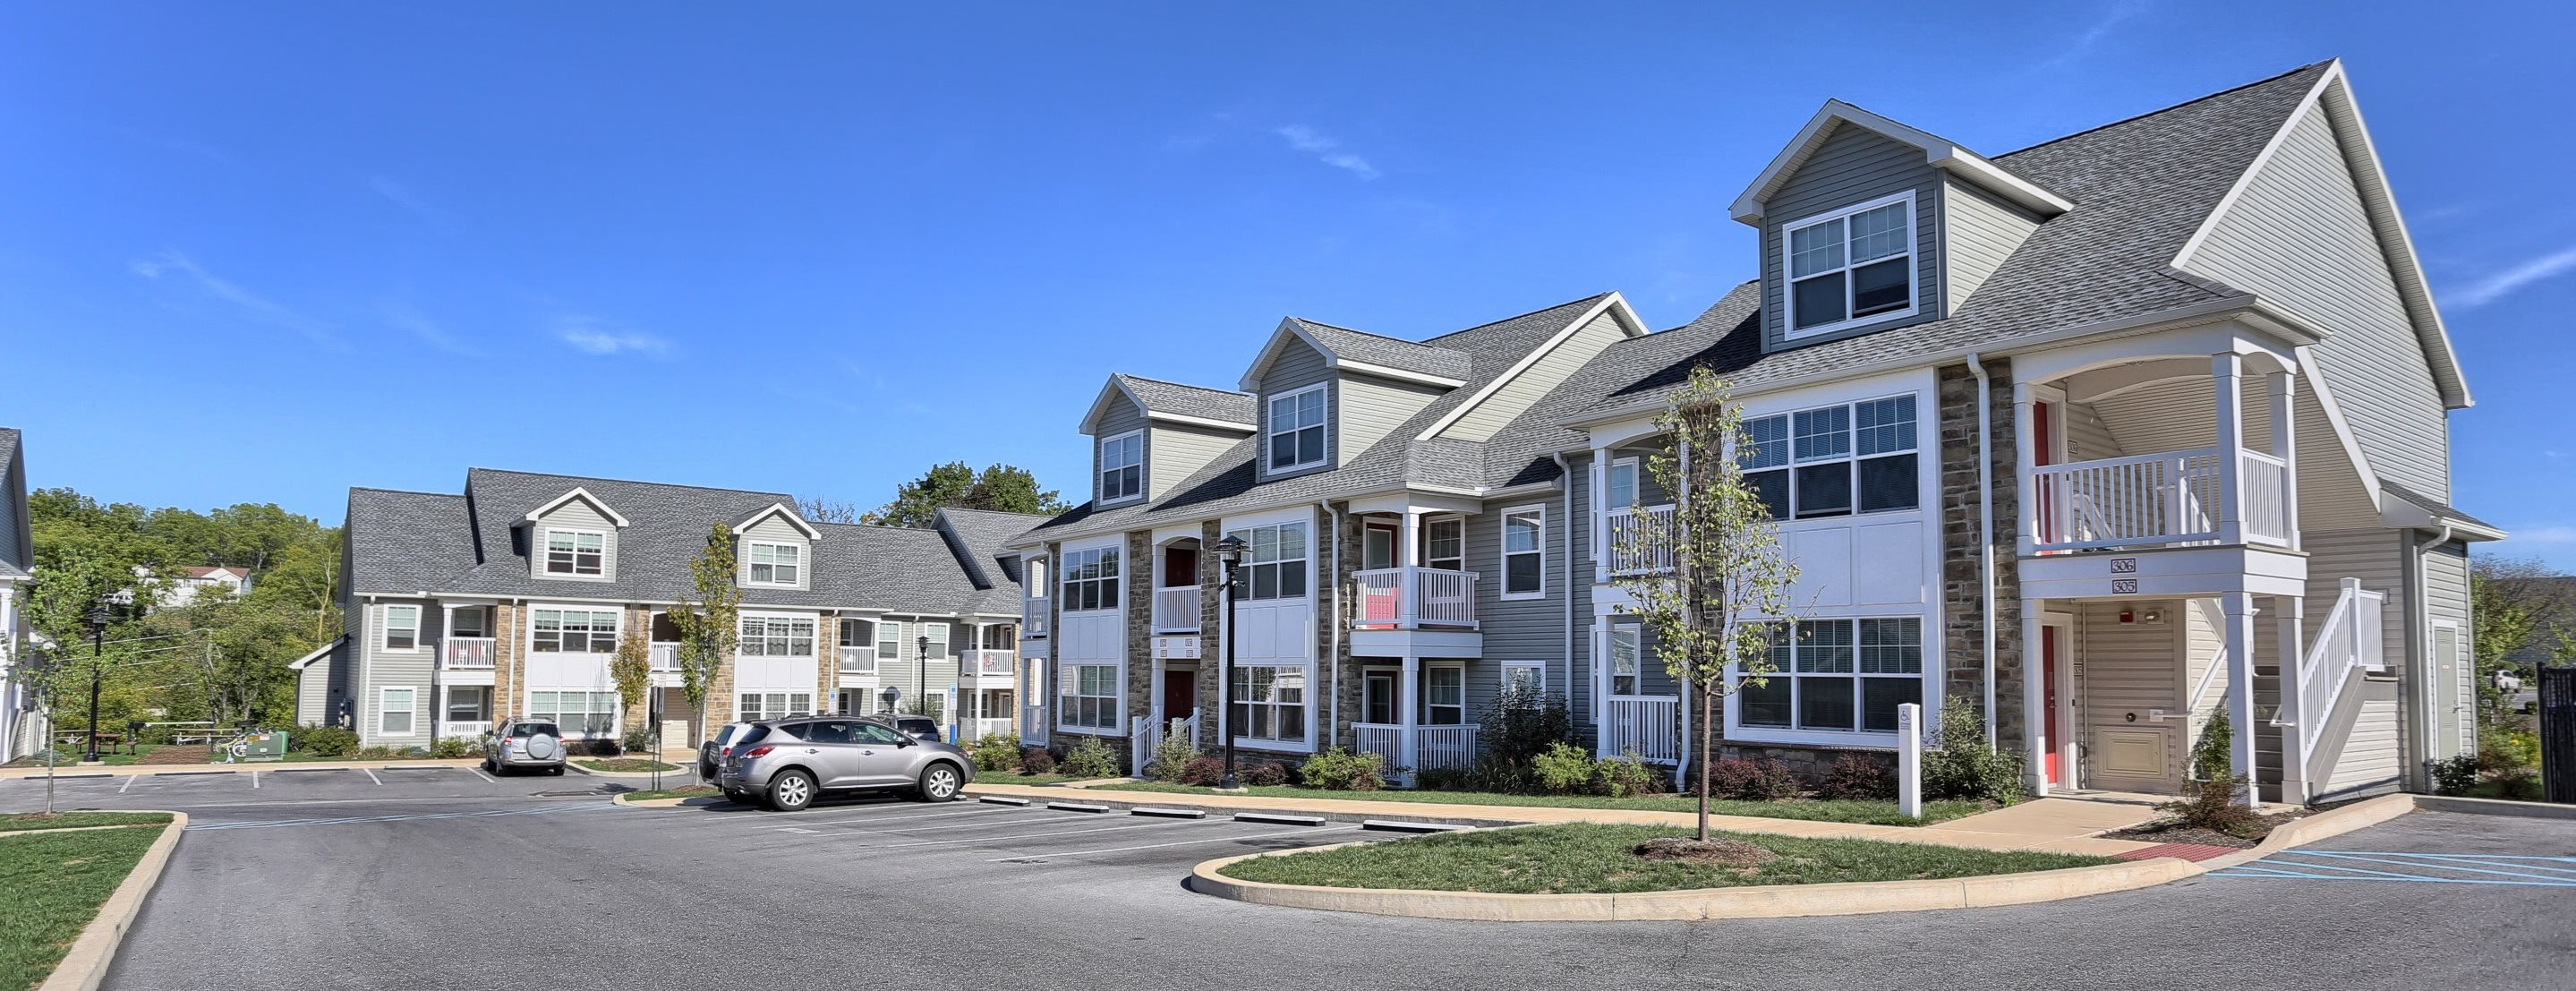 Two Bedroom Apartments in State College, PA | Limerock Court | Property Management, Inc.